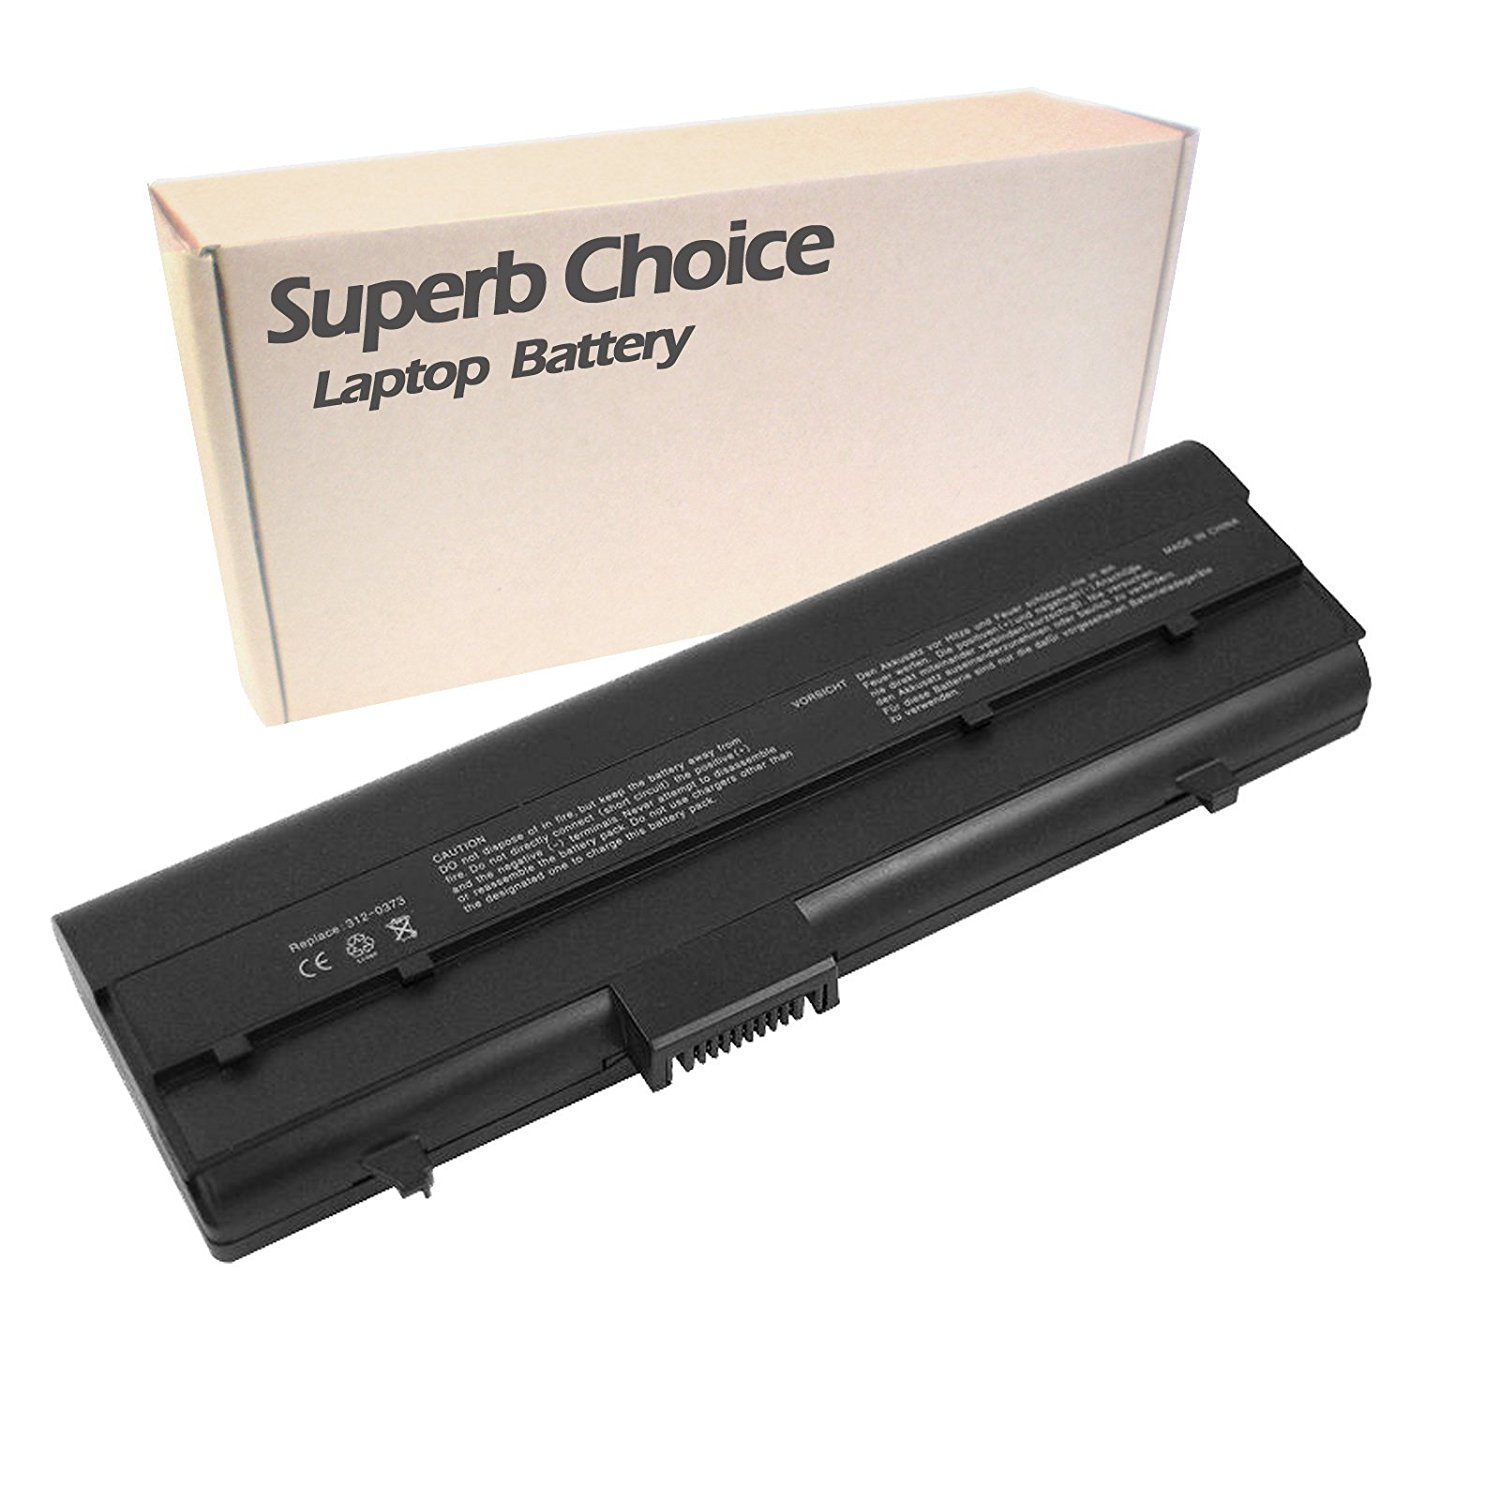 Superb Choice New Laptop Replacement Battery for 9-cell,Dell Inspiron 630M E1405 640M XPS M140 Series Y4493 312-0373 UG679 312-0450 DH074 312-0451 451-10284 451-10285 451-10351 C9551 RC107 TC023 Y9943 series